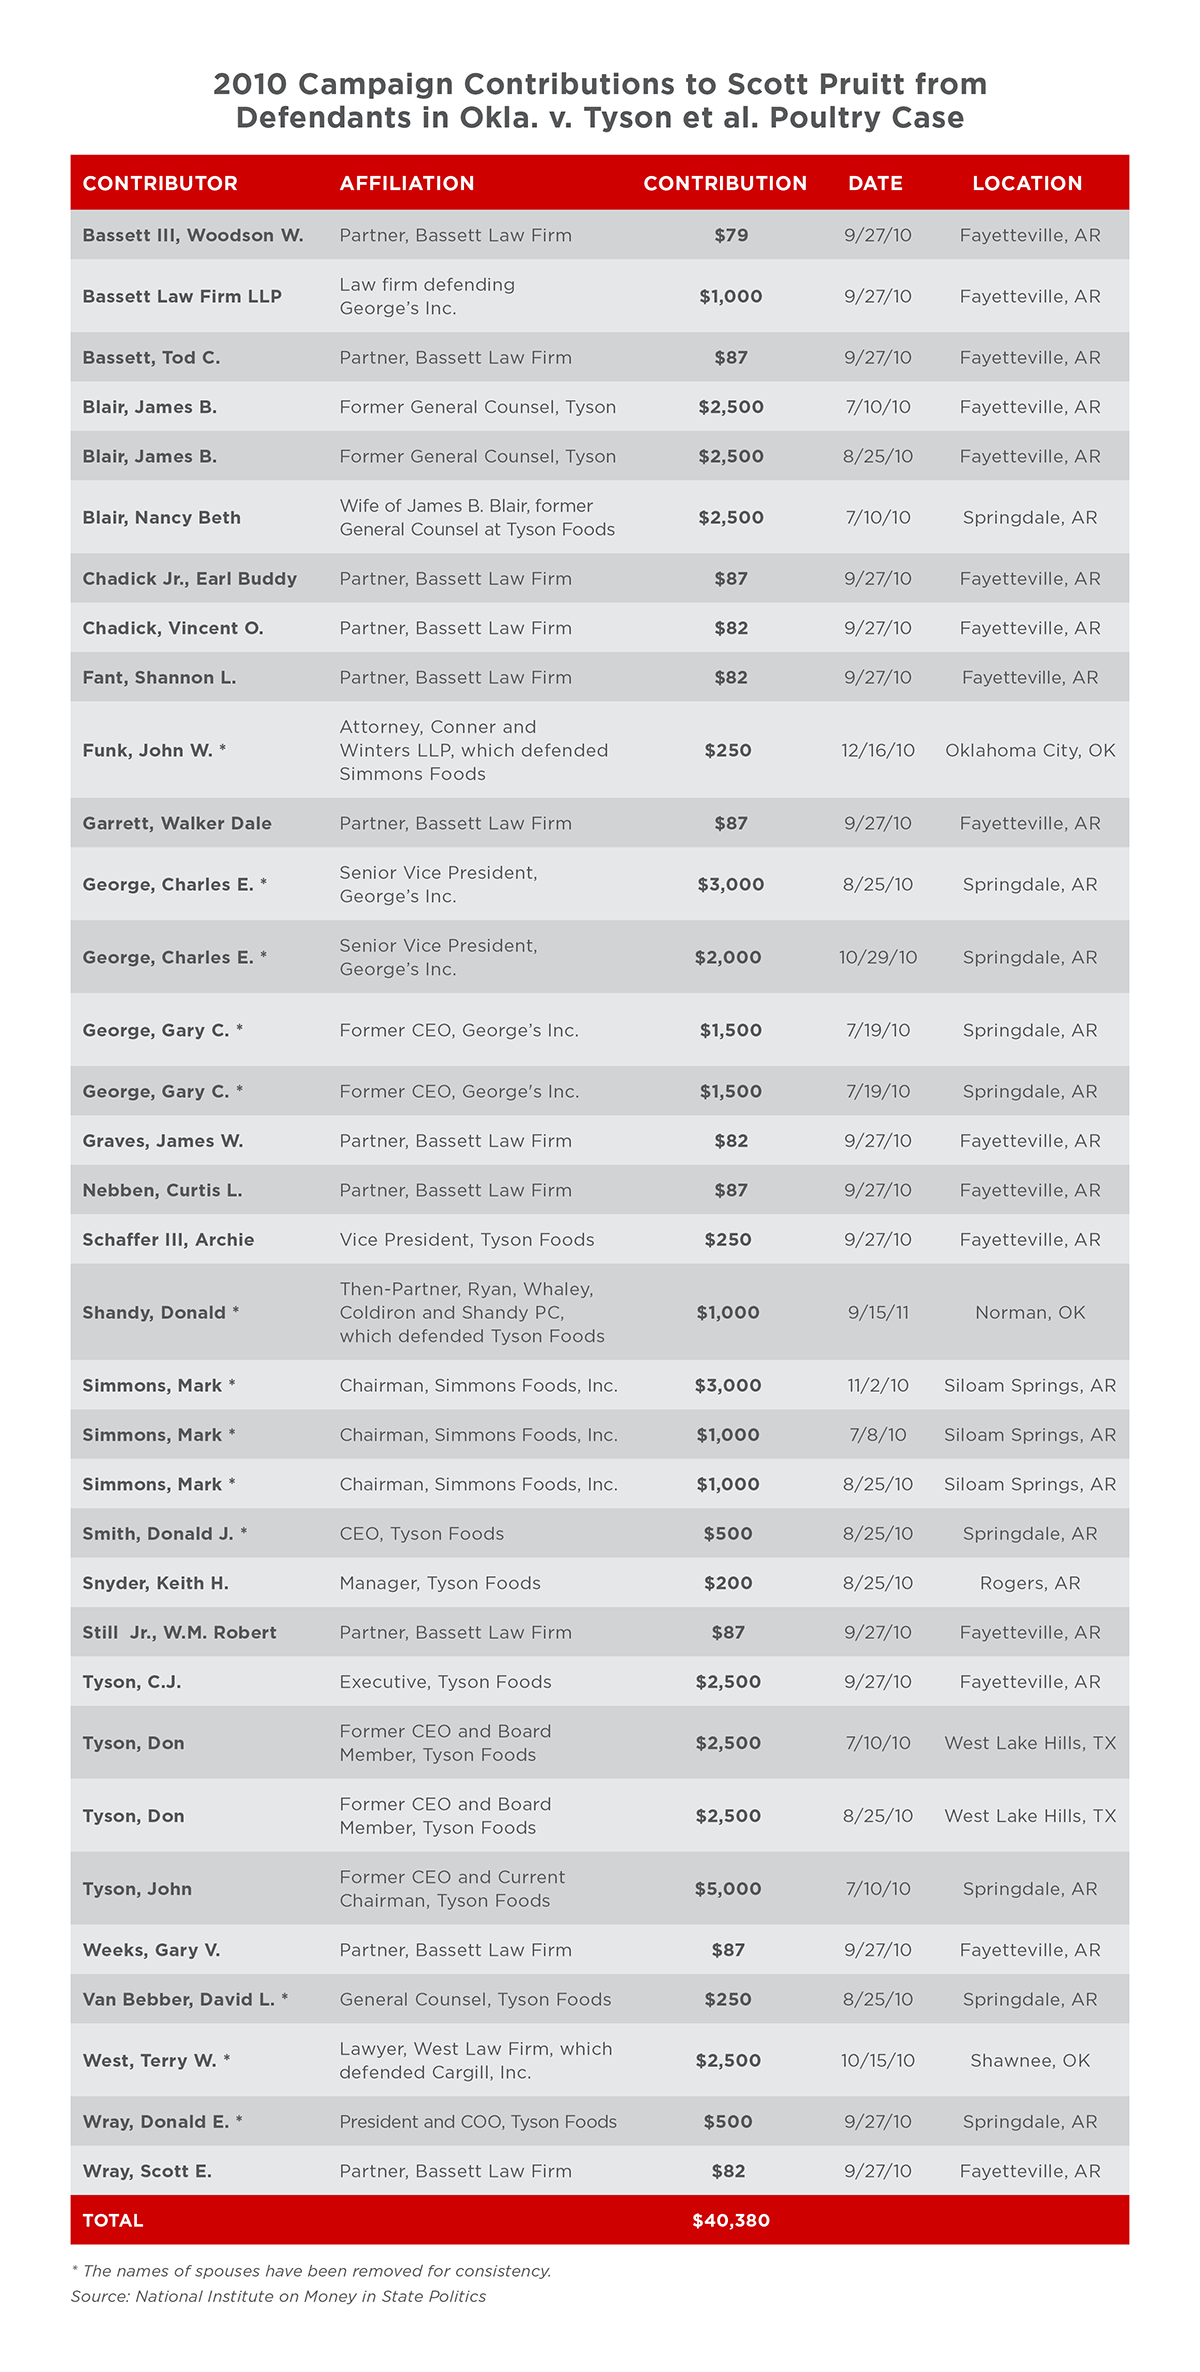 Table detailing 2010 campaign contributions to Scott Pruitt